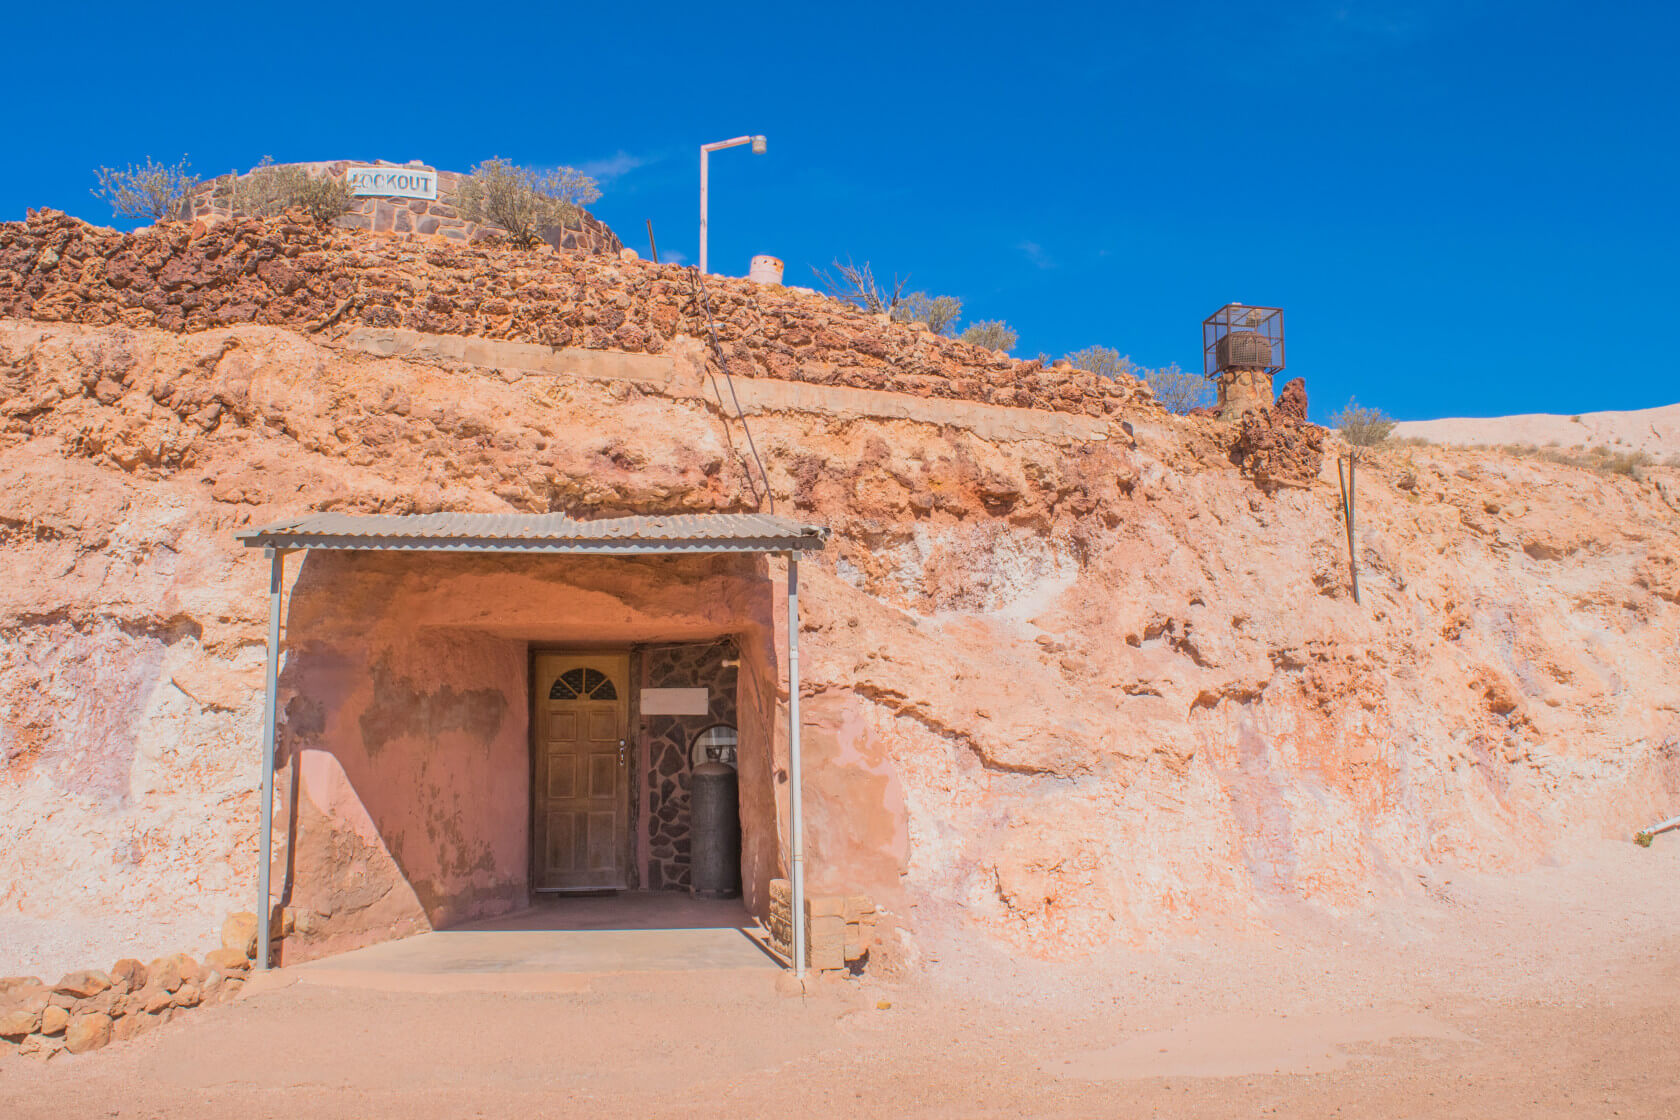 Images Of Bunk Beds Coober Pedy Australia An Underground Opal Mining Town In